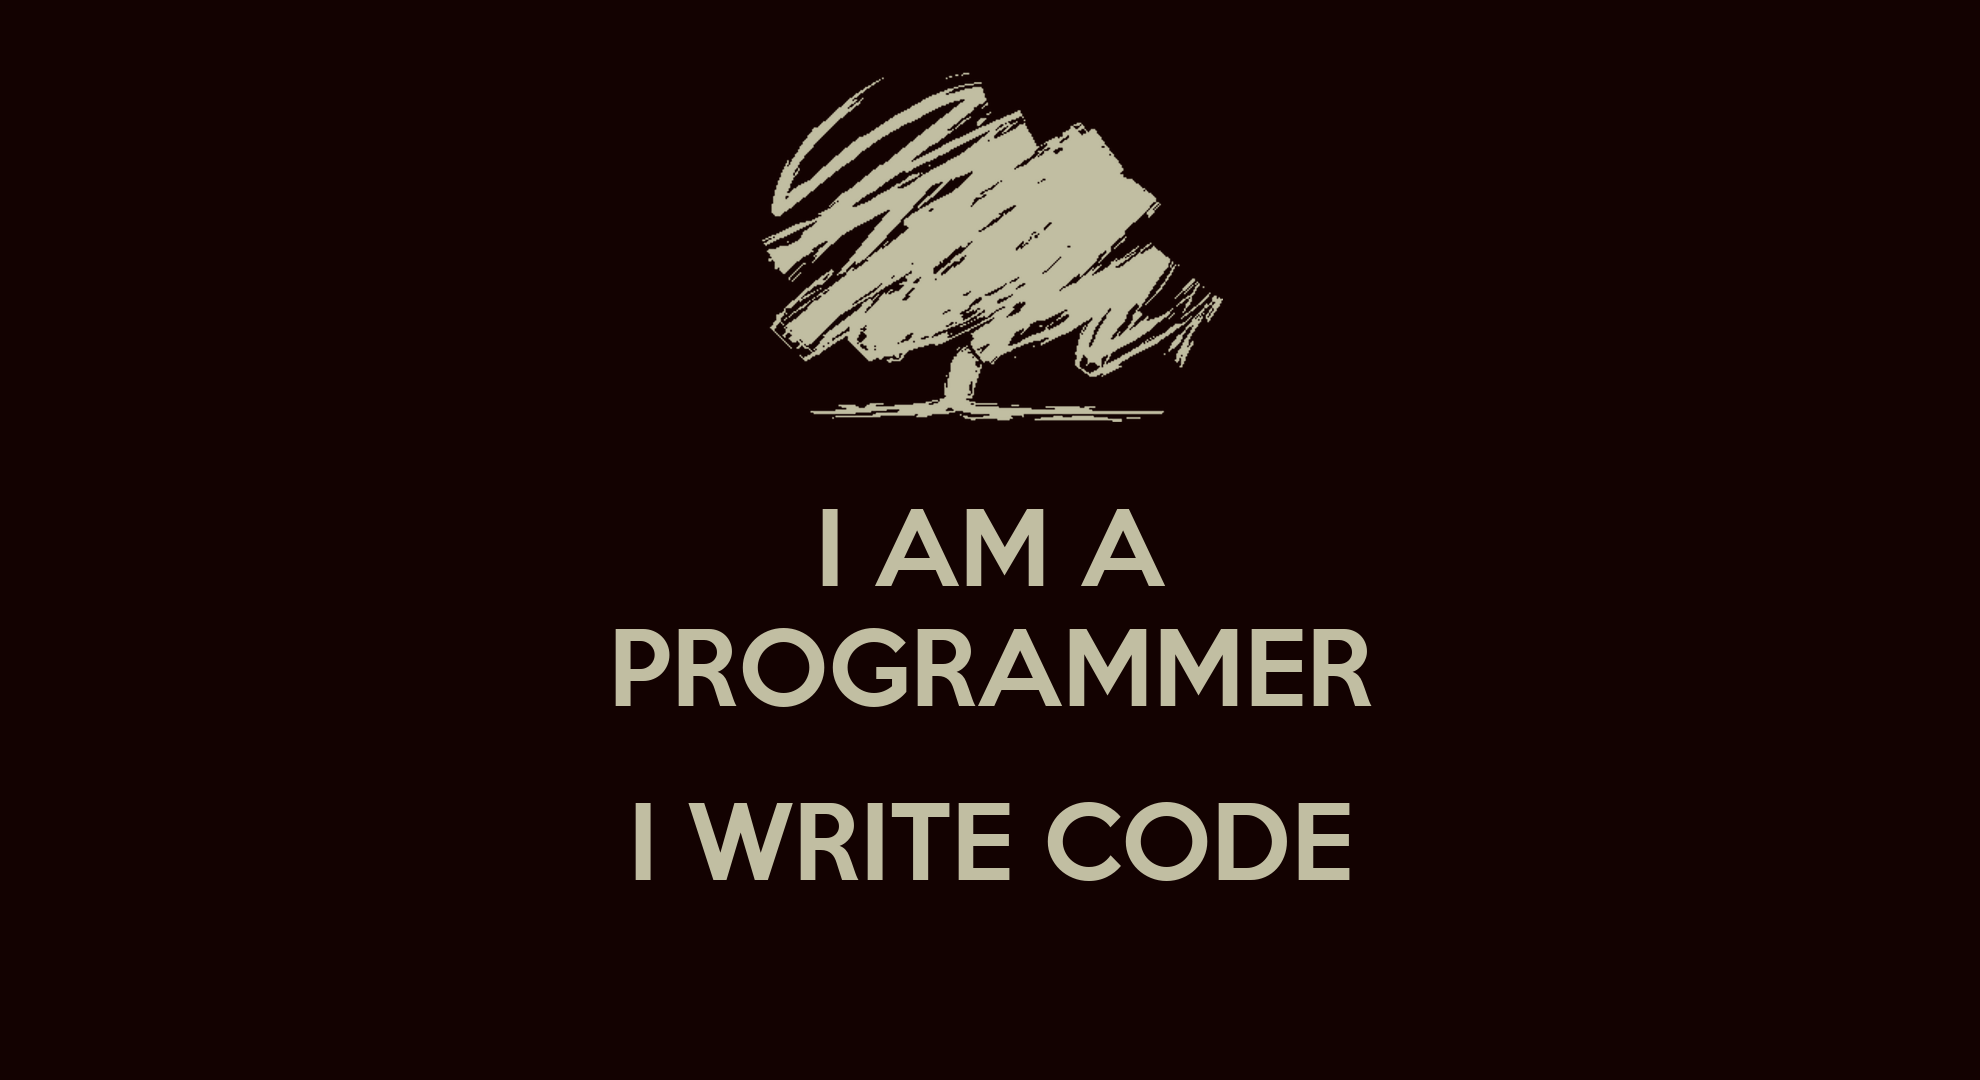 Programmer Quotes Wallpaper Hd I Am A Programmer I Write Code Poster K Keep Calm O Matic